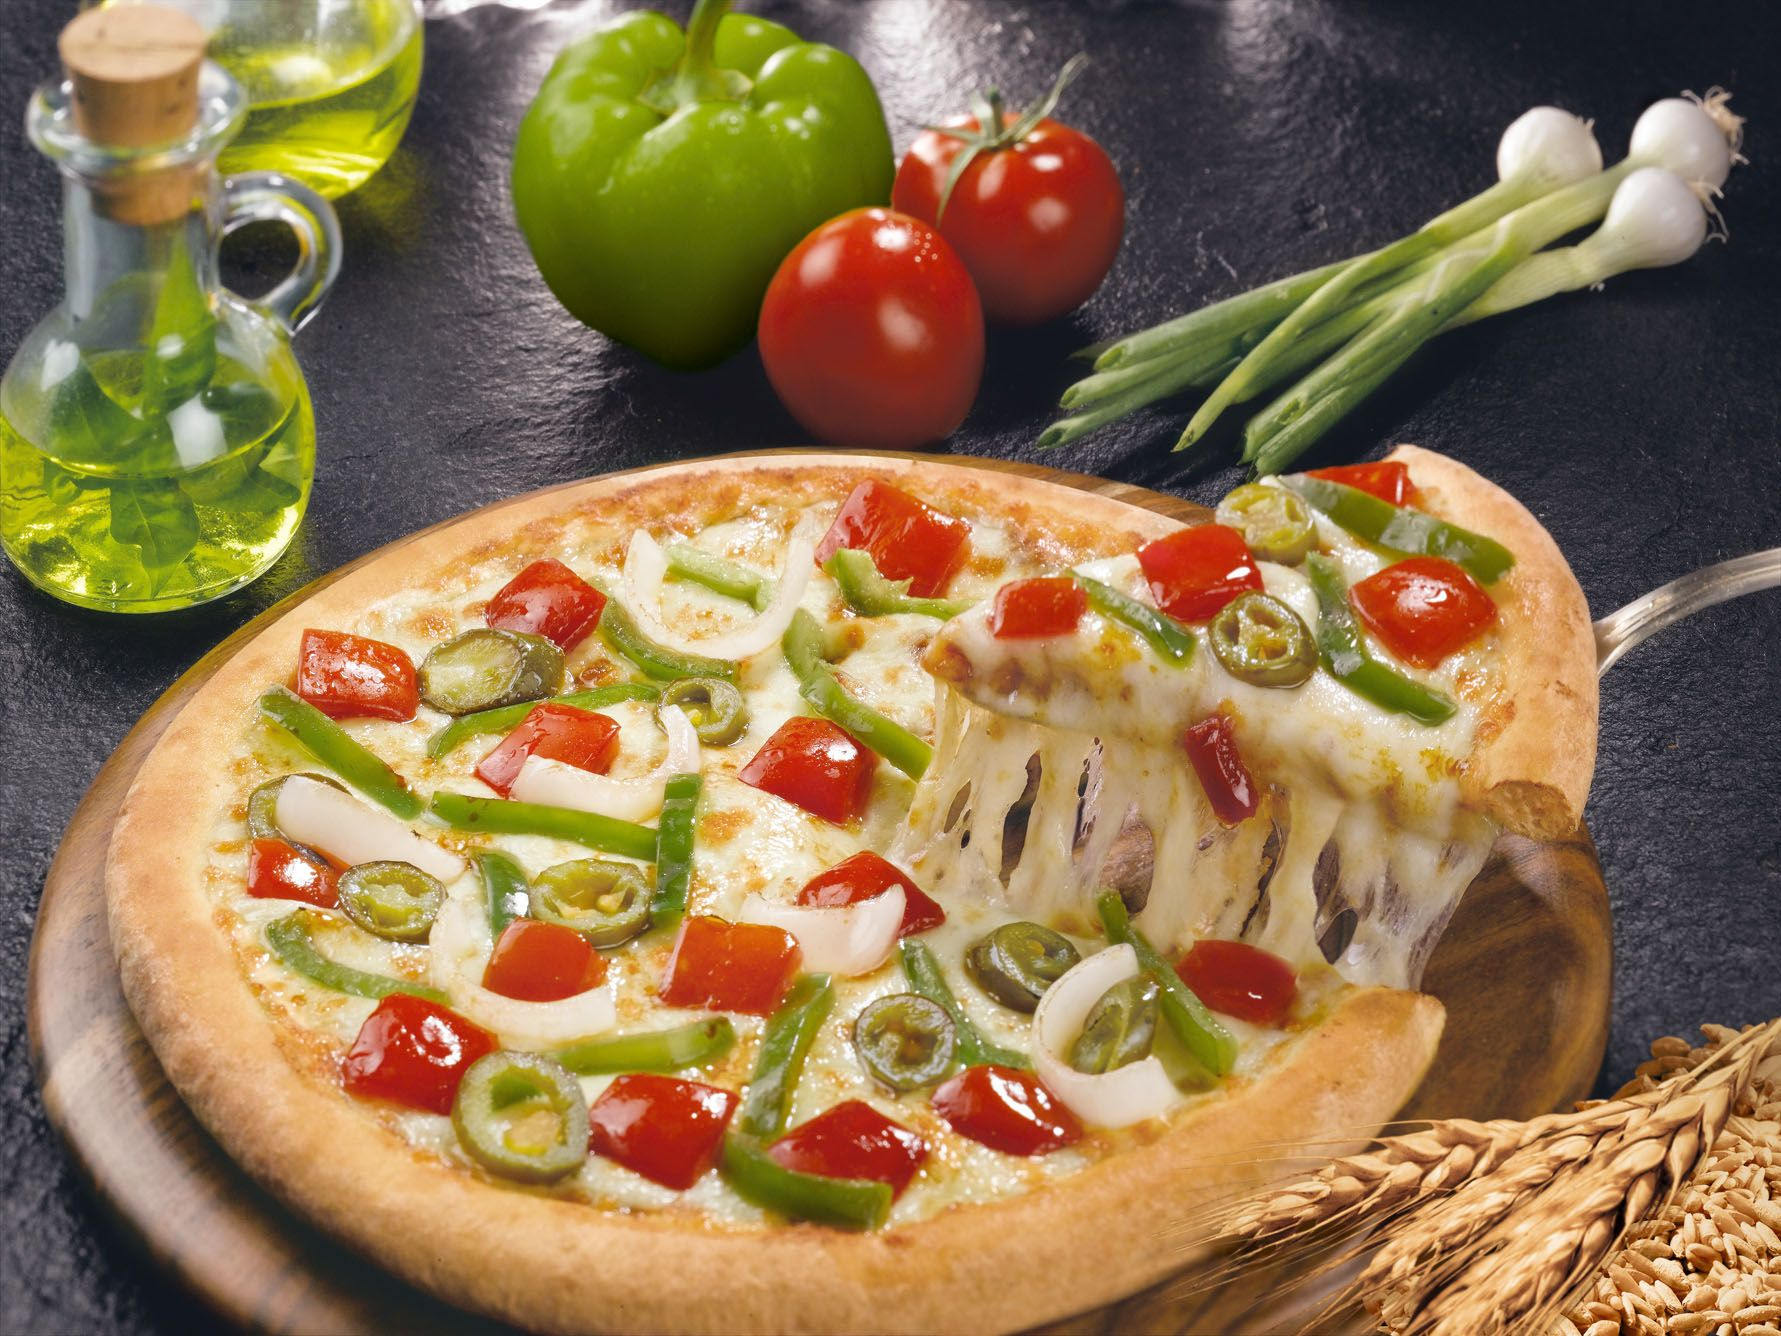 Cheese Pizza Wallpapers Photo Pizza Wallpaper Veg Pizza Cheese Pizza